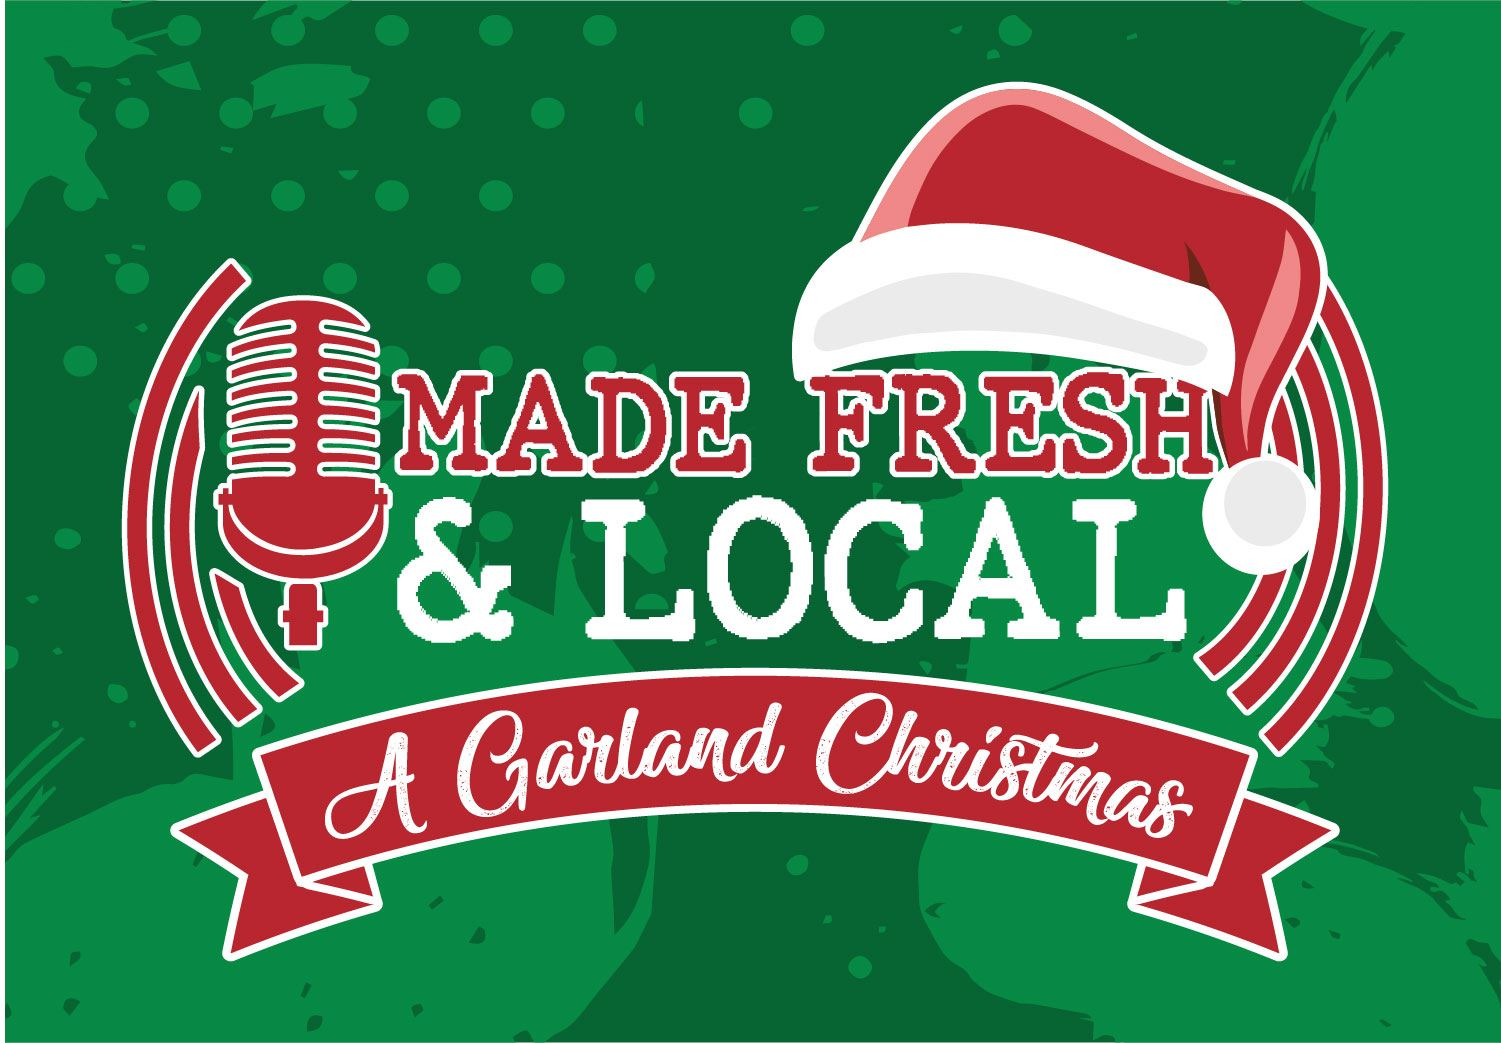 Made Fresh Local_A Garland Christmas_360x250